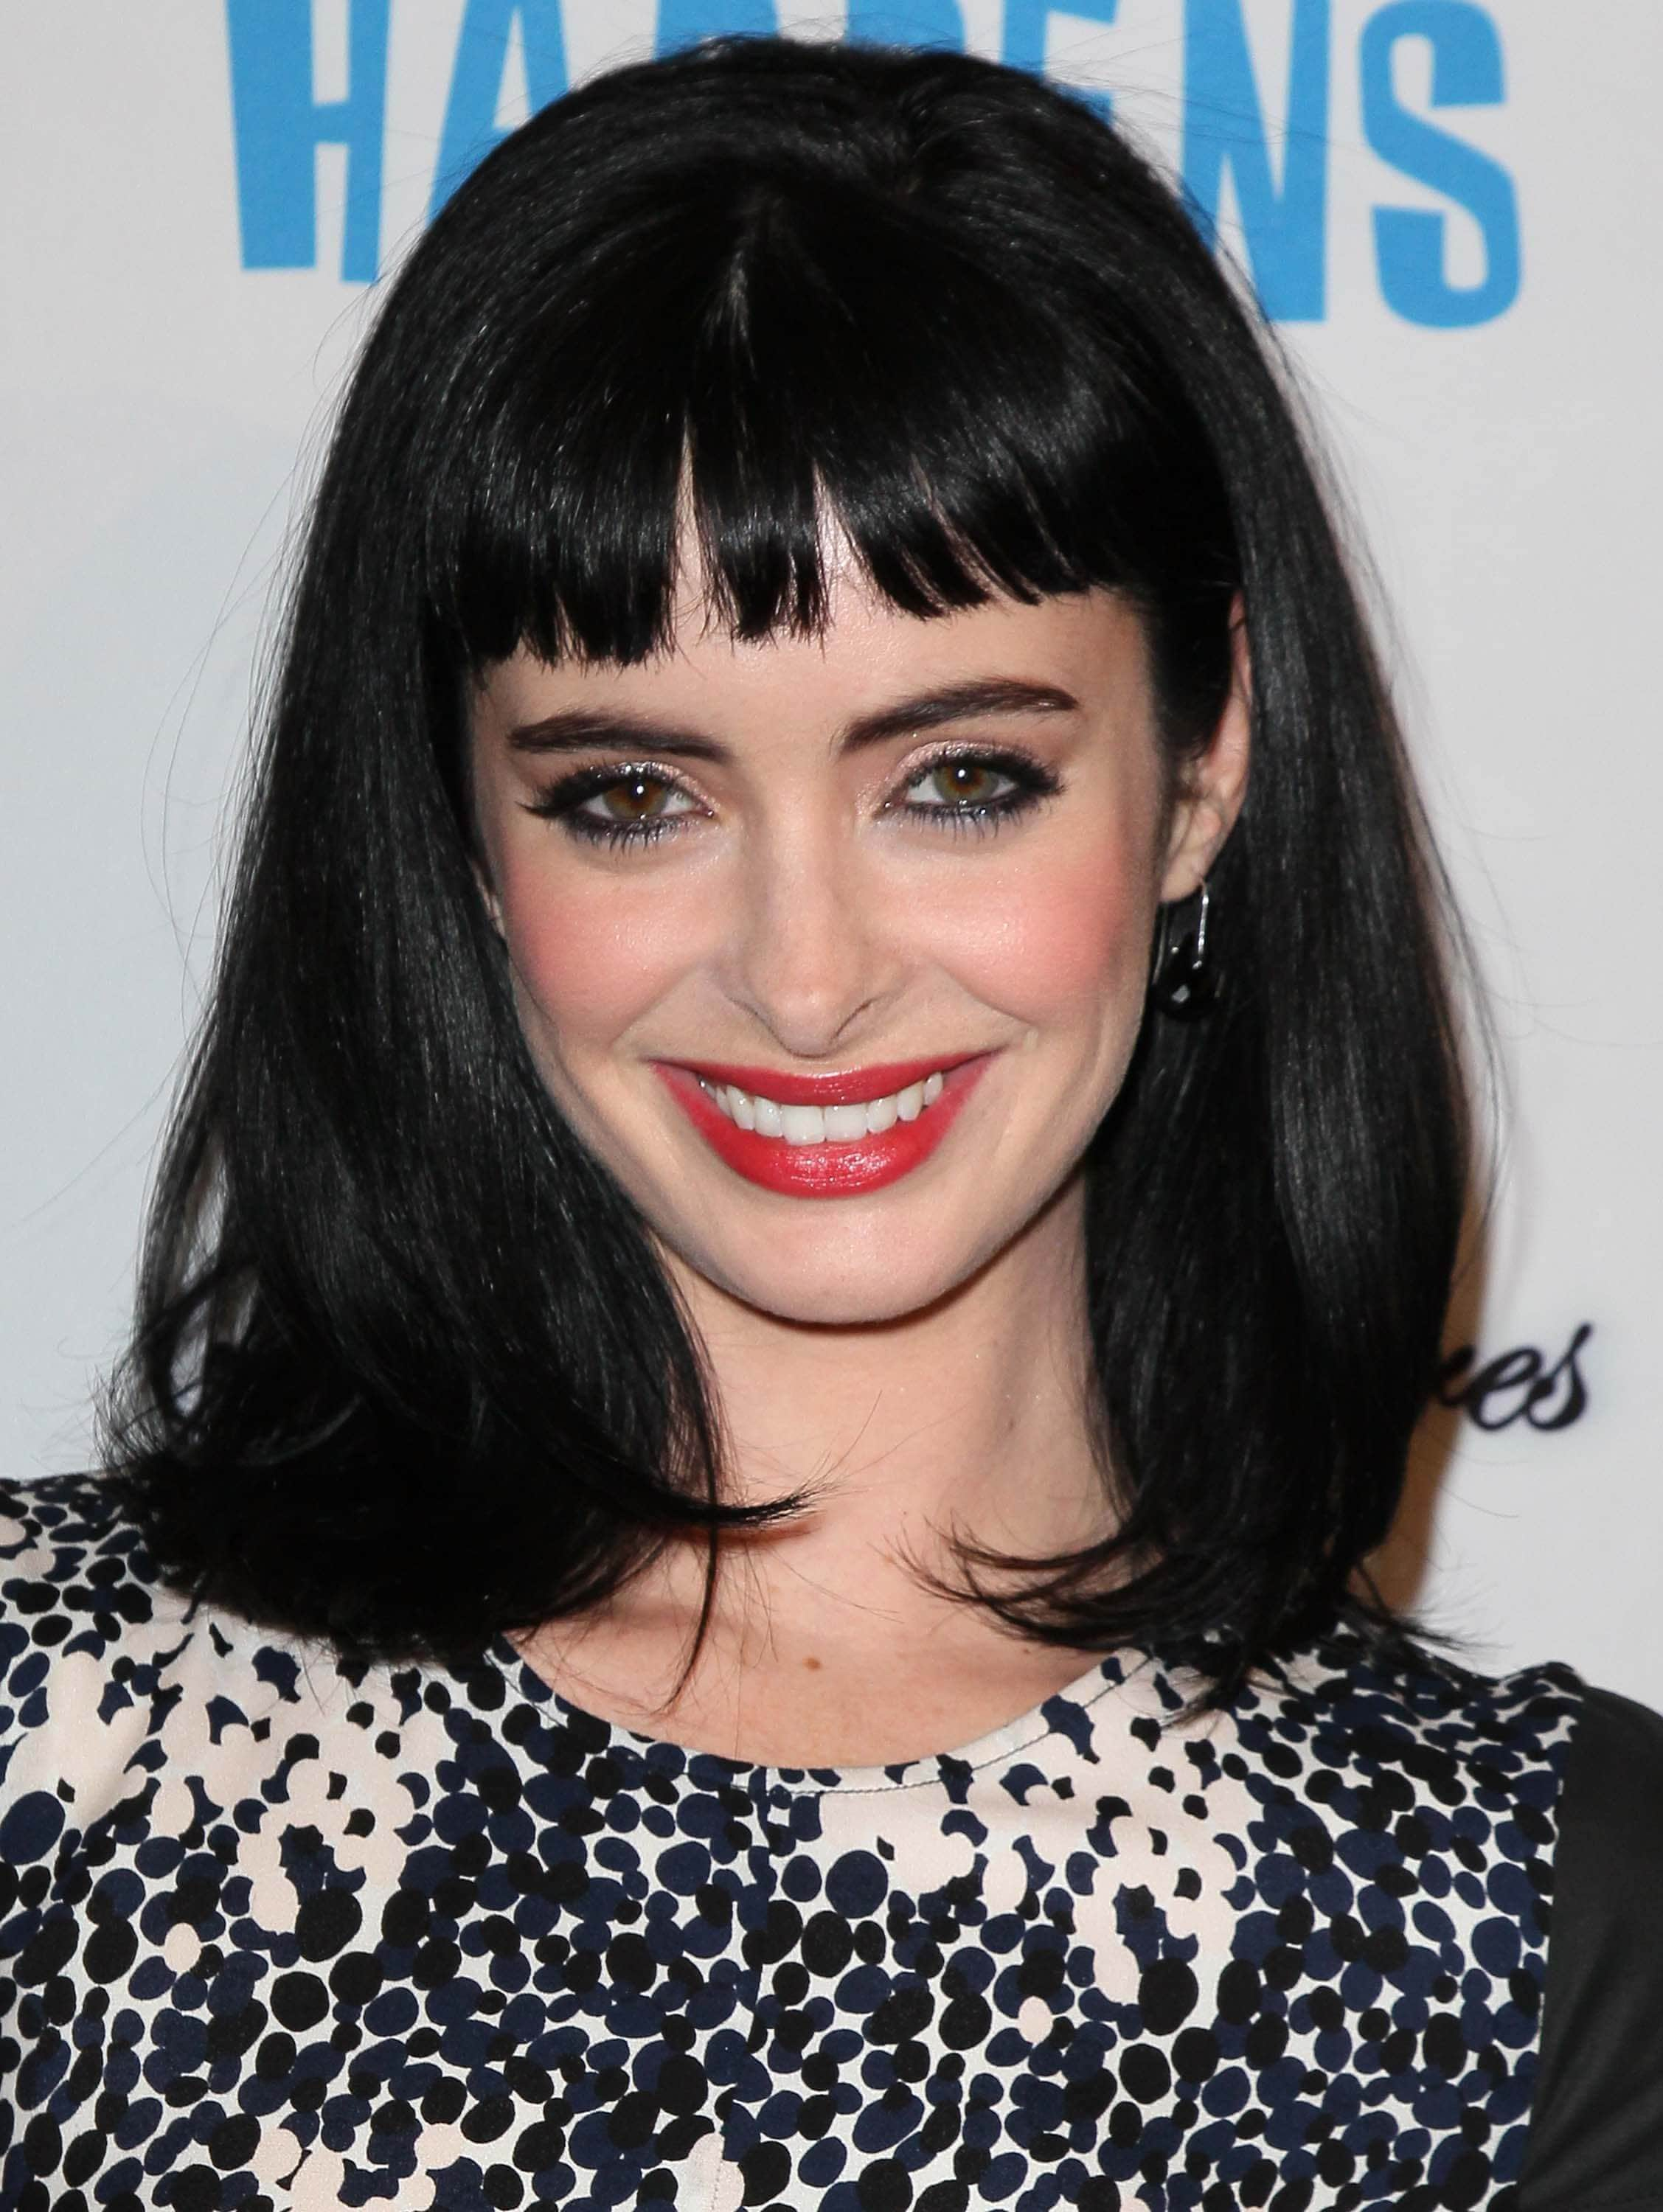 close up shot of Krysten Ritter with bettie page-inspired fringe hairstyle, wearing blue and black dress and posing on the red carpet